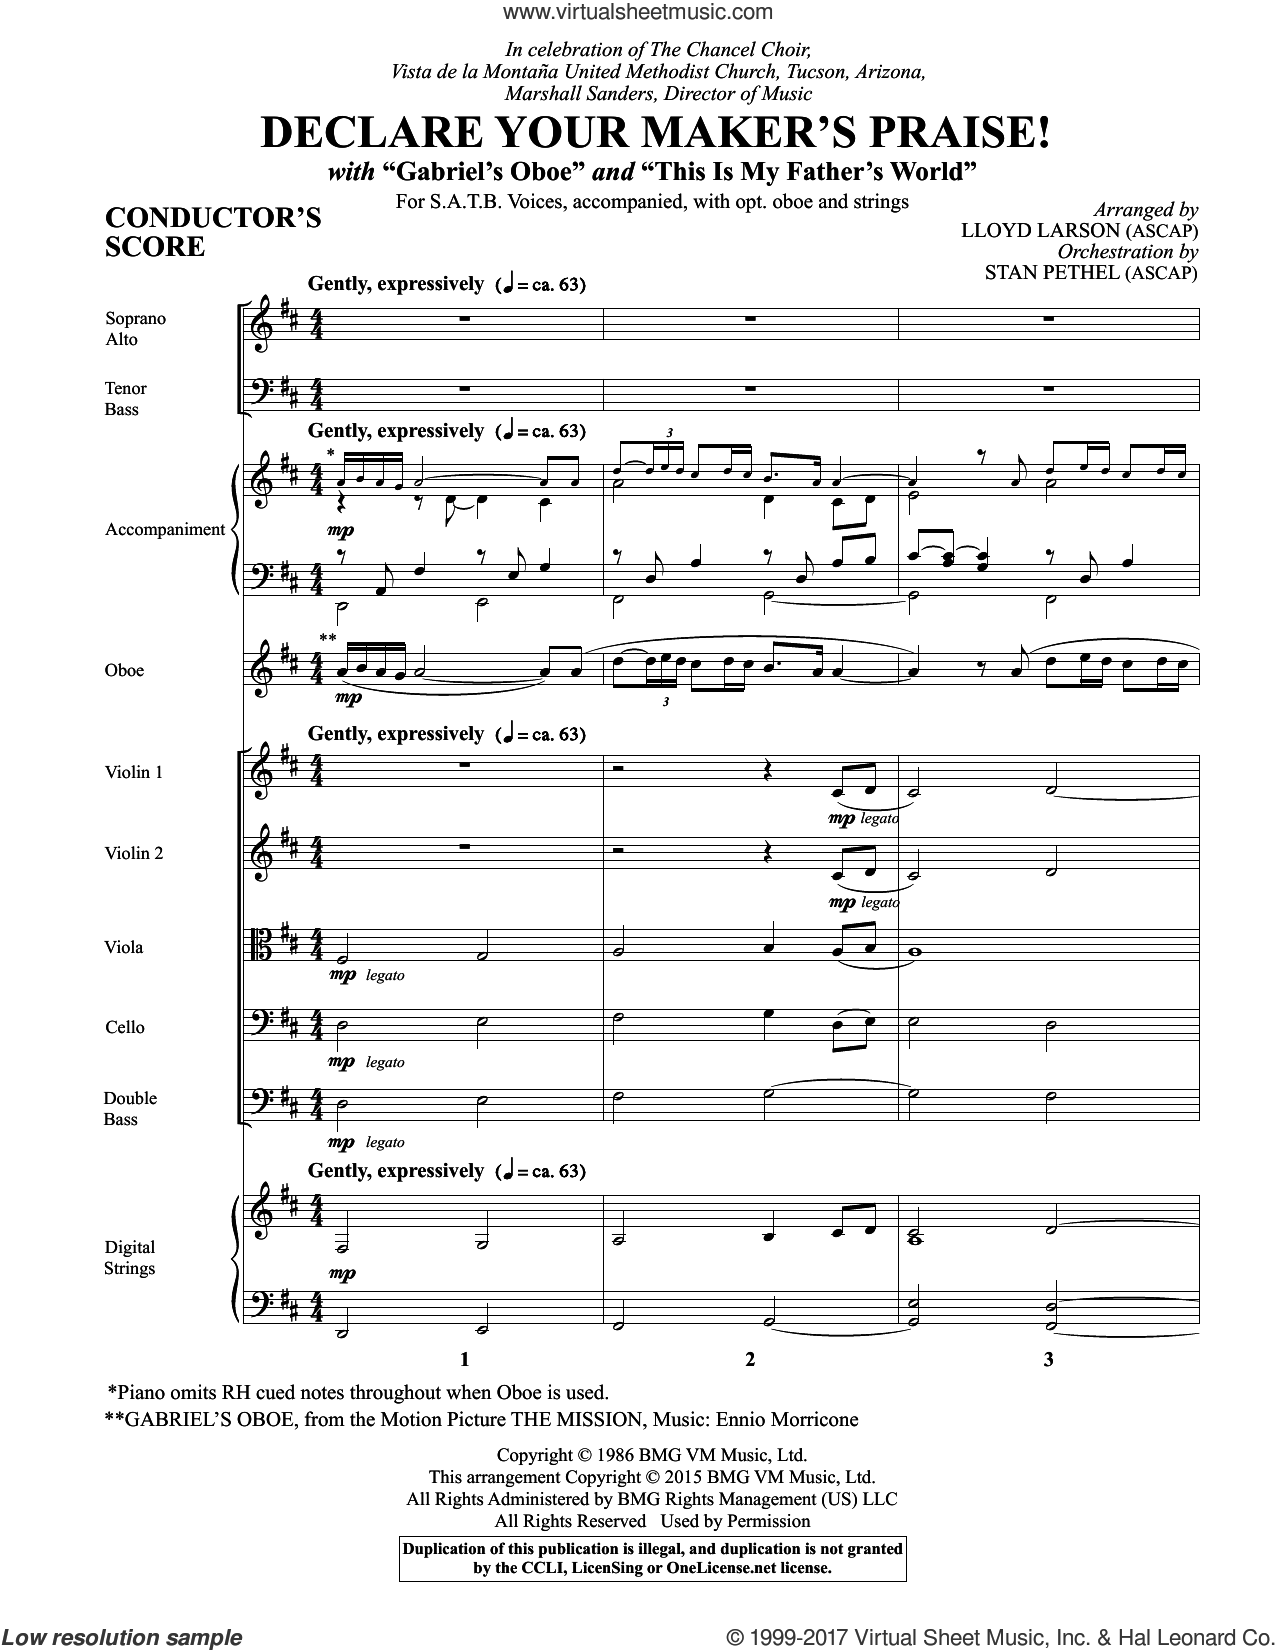 Declare Your Maker's Praise! (COMPLETE) sheet music for orchestra/band by Lloyd Larson and Ennio Morricone, intermediate skill level